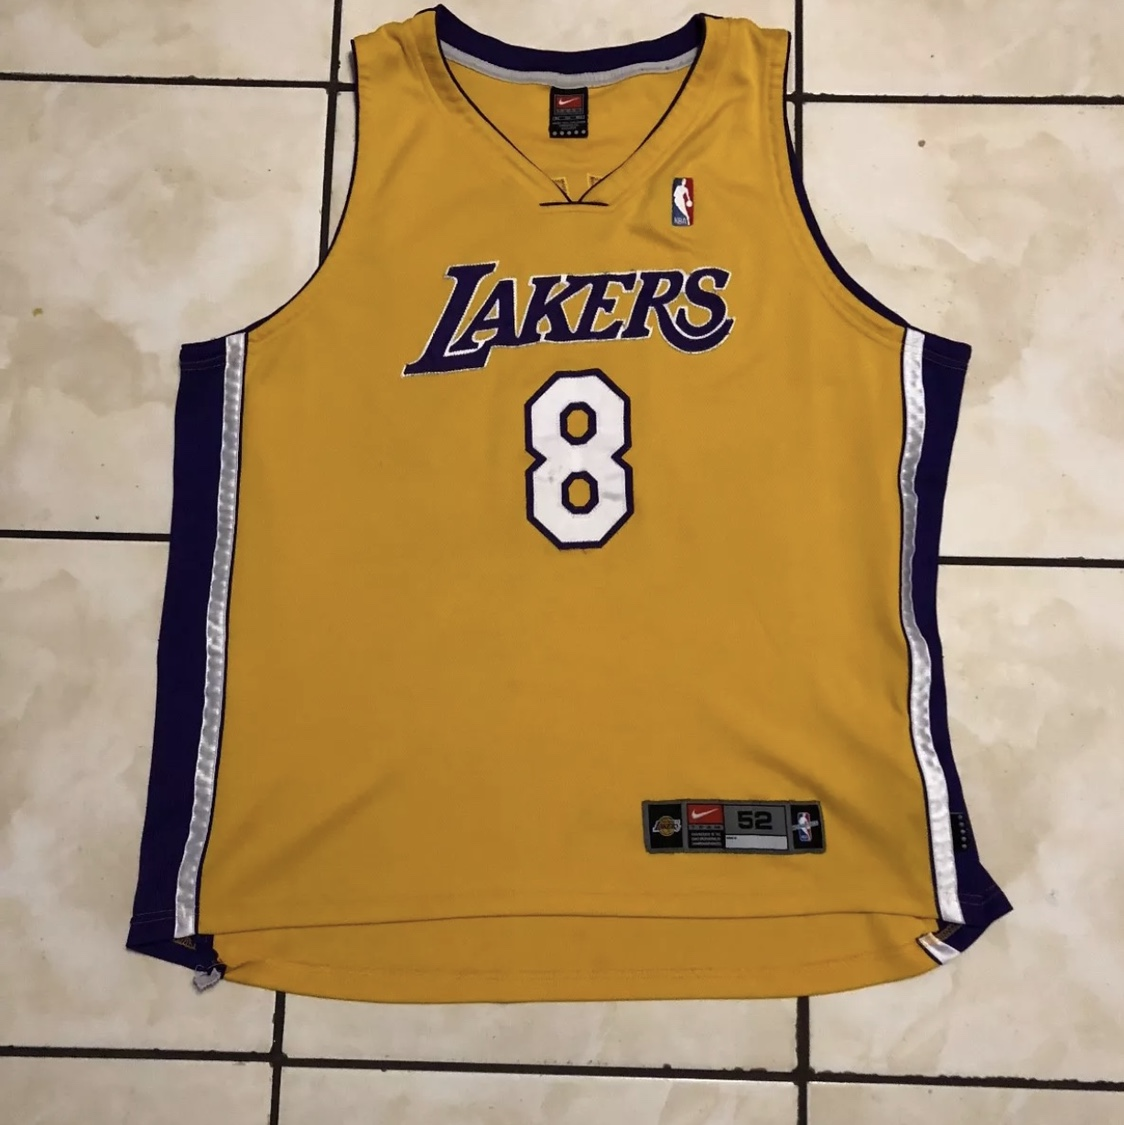 new style 25ef1 5de02 90s Kobe Bryant Lakers jersey number 8 from his... - Depop